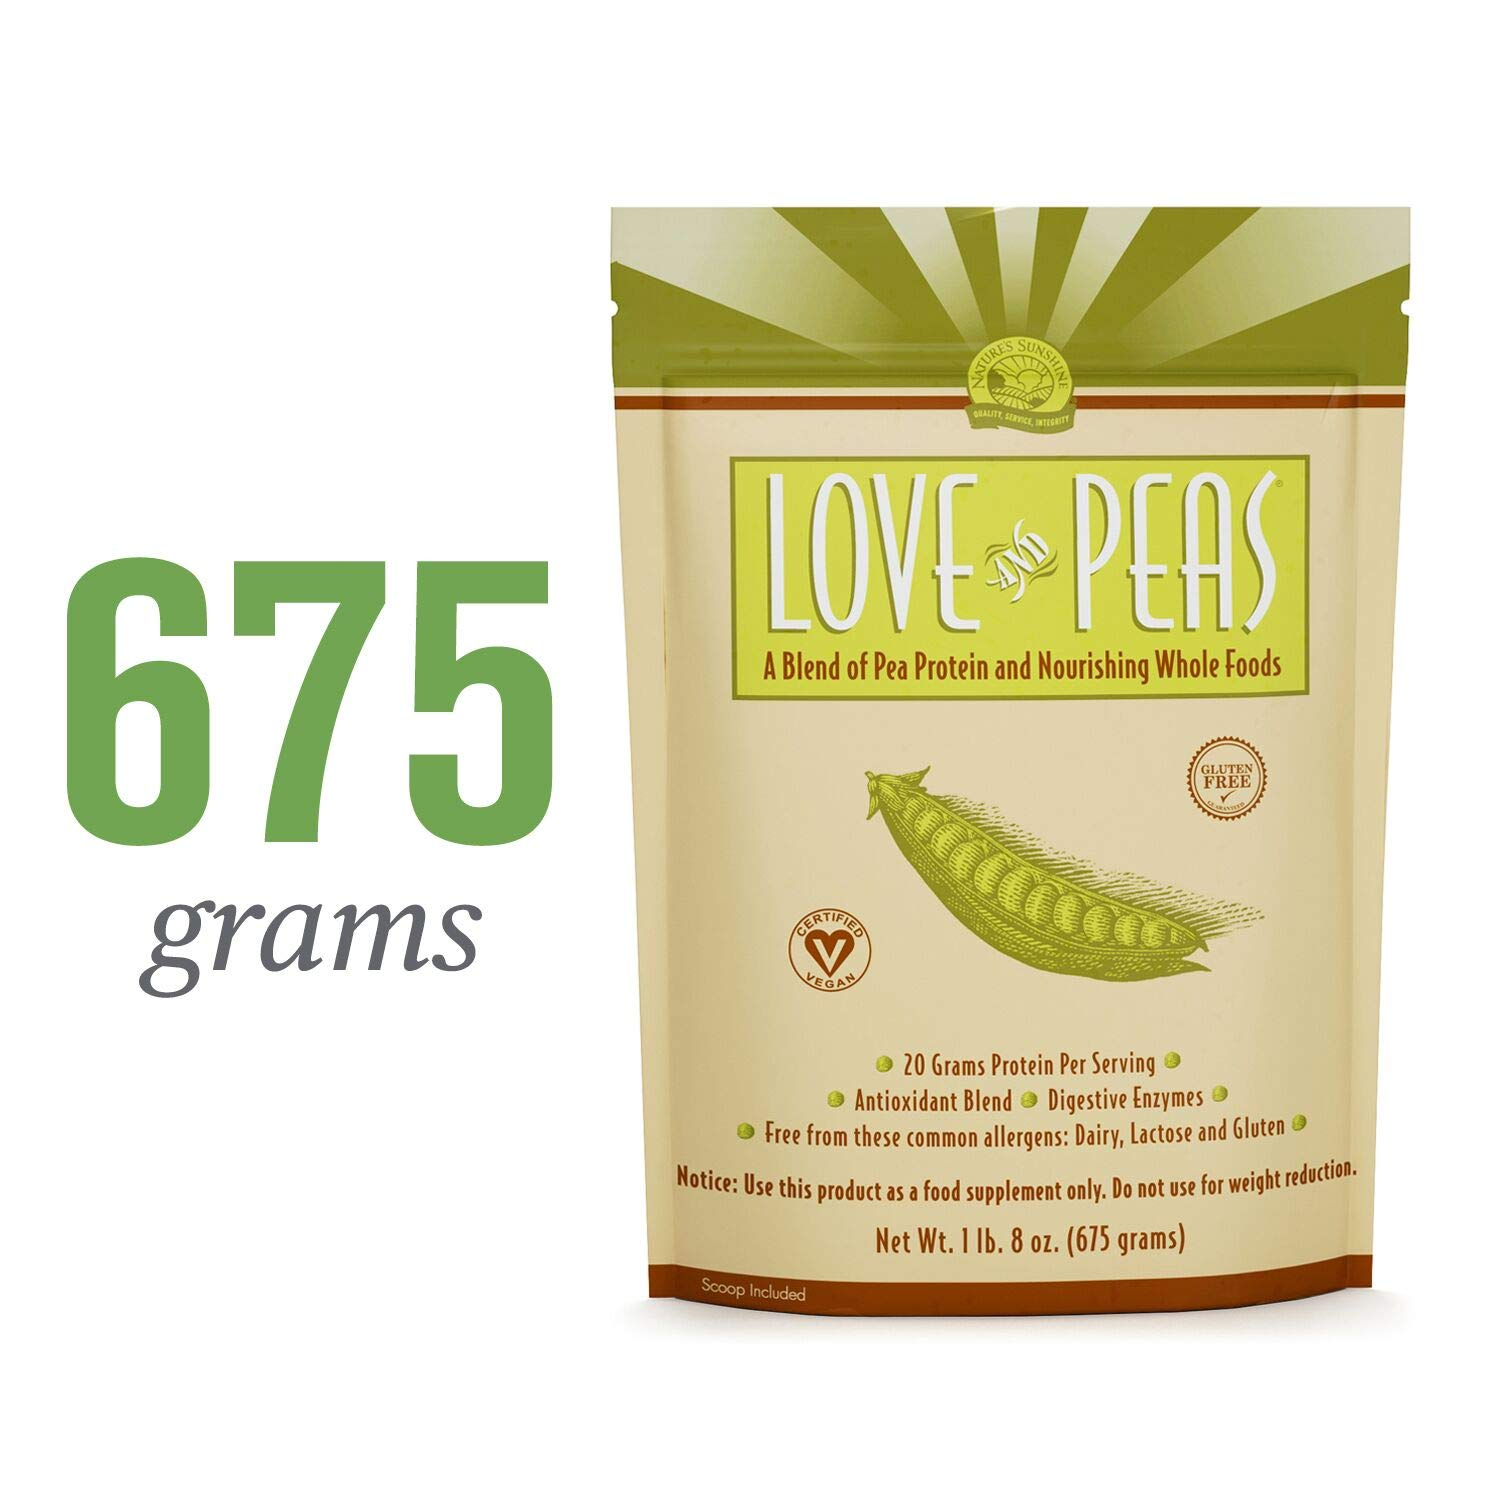 Nature's Sunshine Love and Peas, 675gr. Bag | Vegan Protein Powder with Natural Pea Protein and Other Nourishing Whole Foods and Nutrients by Nature's Sunshine